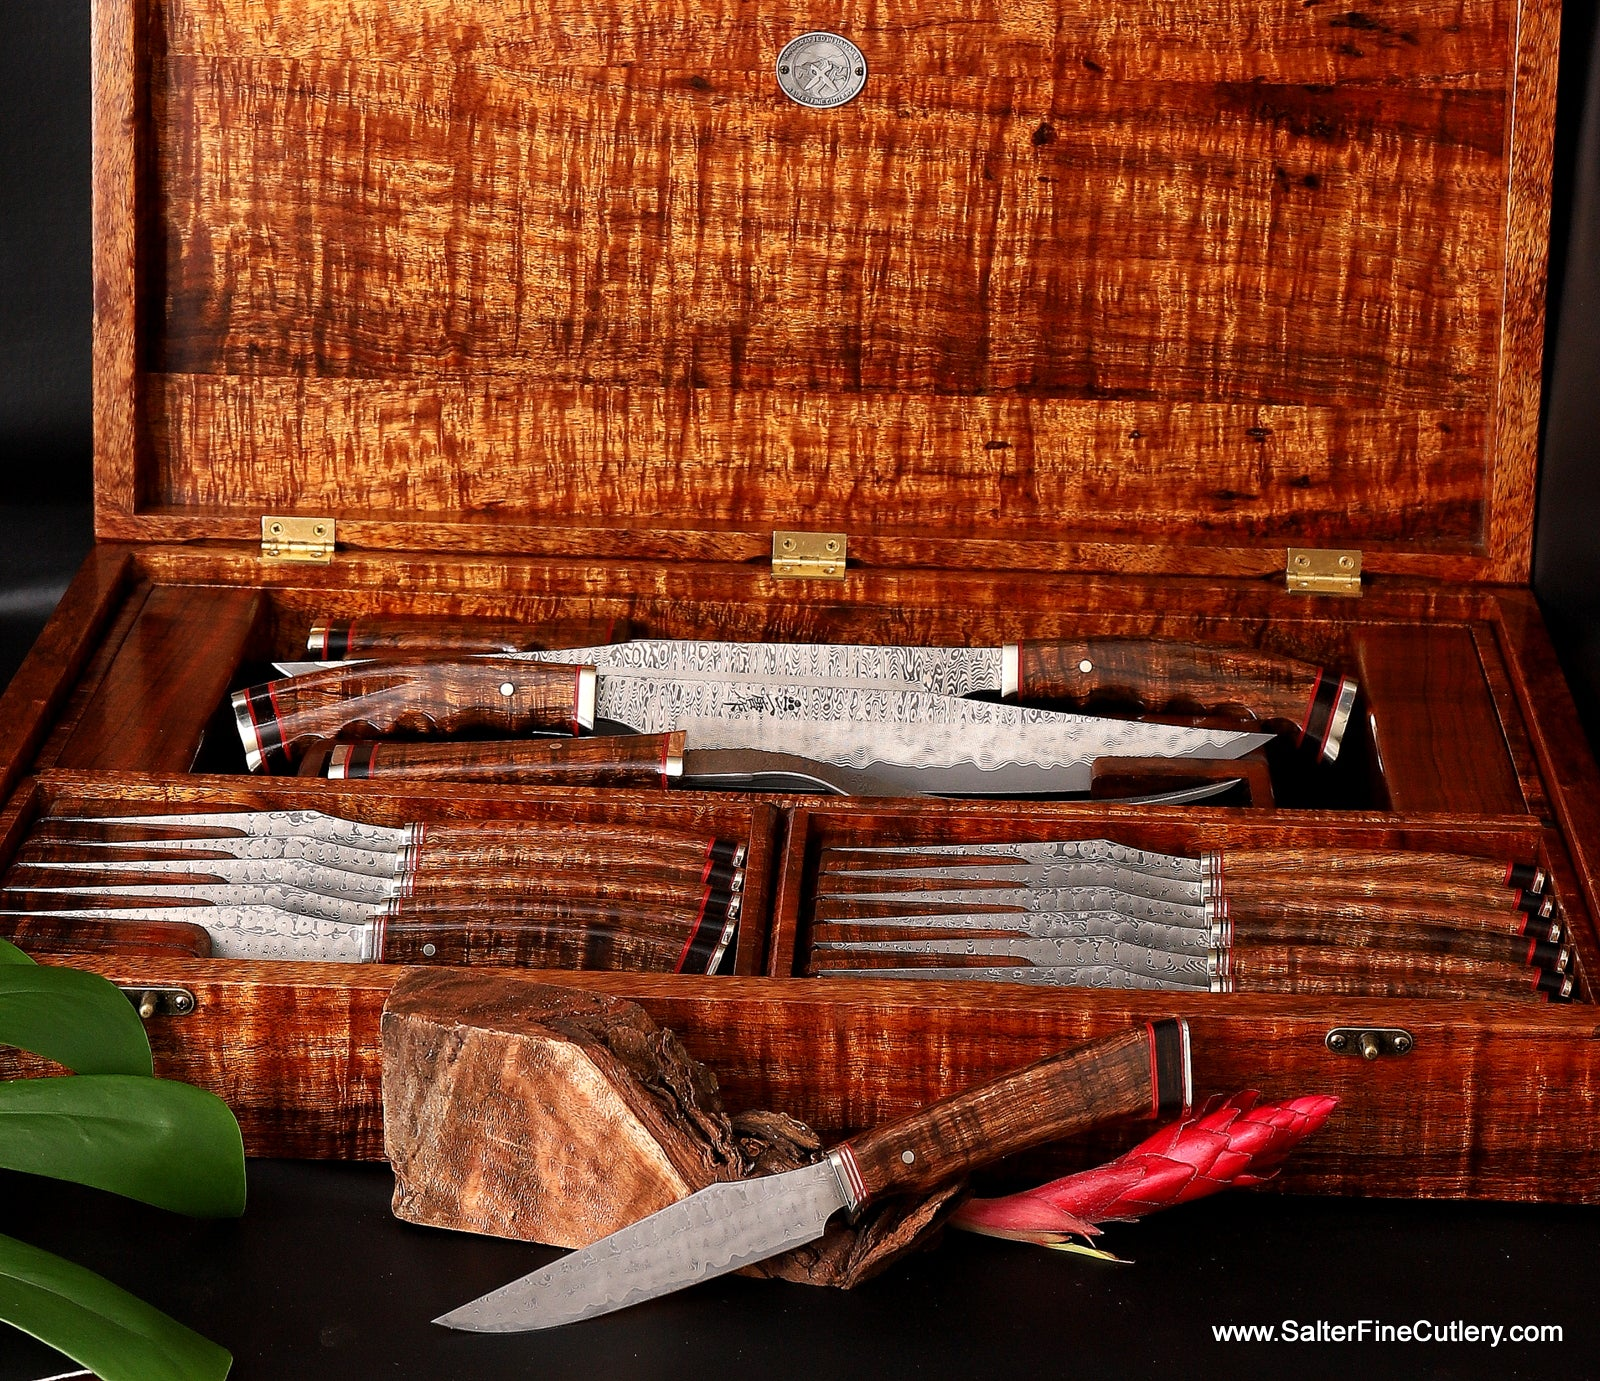 16-piece custom luxury cutlery set featuring 12 steak knives and a 4-piece carving set in a spectacular matching presentation display box by Salter Fine Cutlery of Hawaii